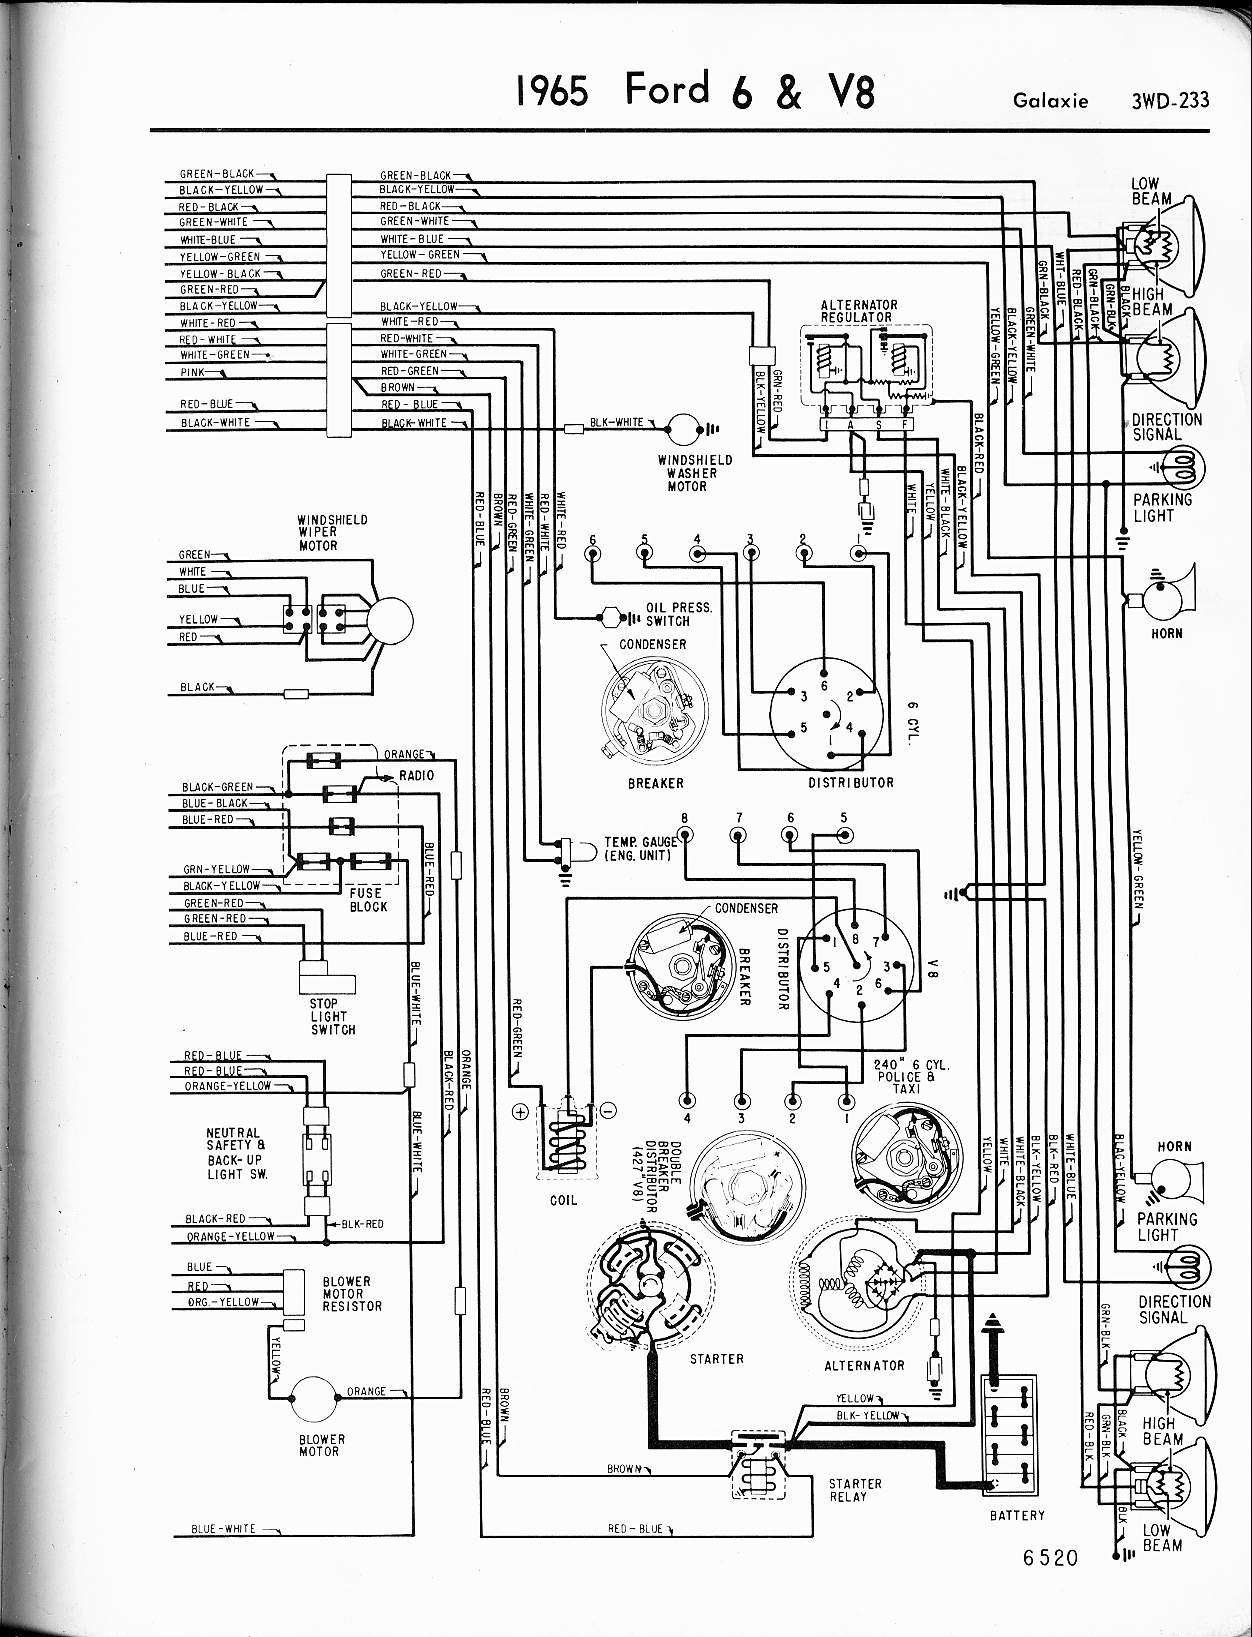 57 65 ford wiring diagrams rh oldcarmanualproject com Ford Premium Sound Wiring Diagram Ford Escape Wiring Harness Diagram